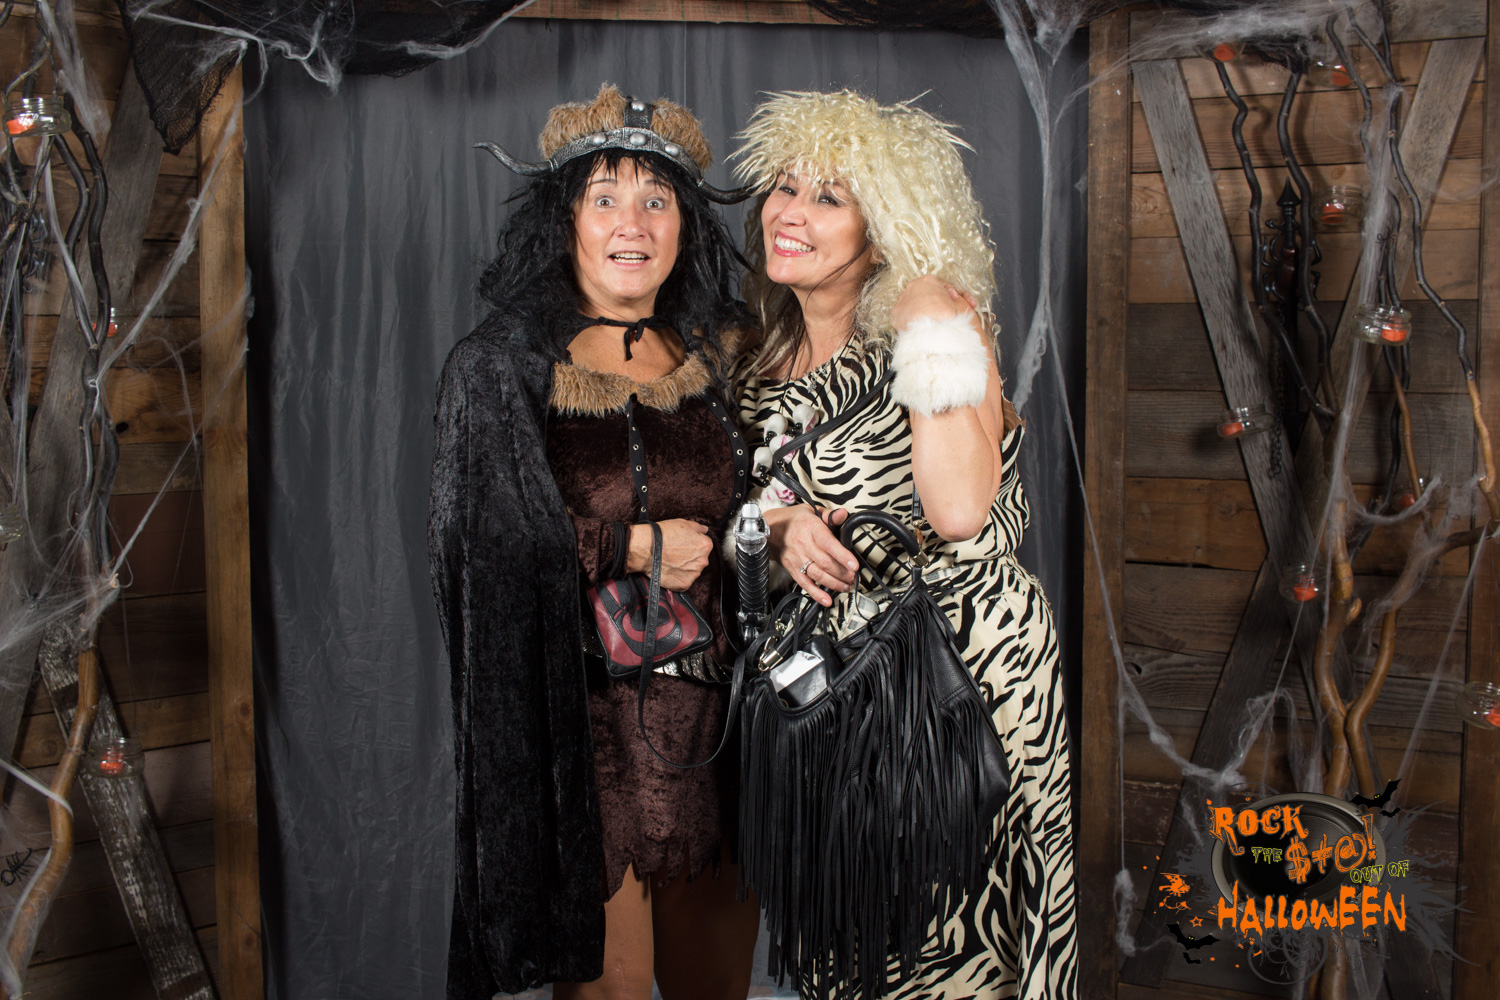 Halloween-PhotoBooth-026-6752